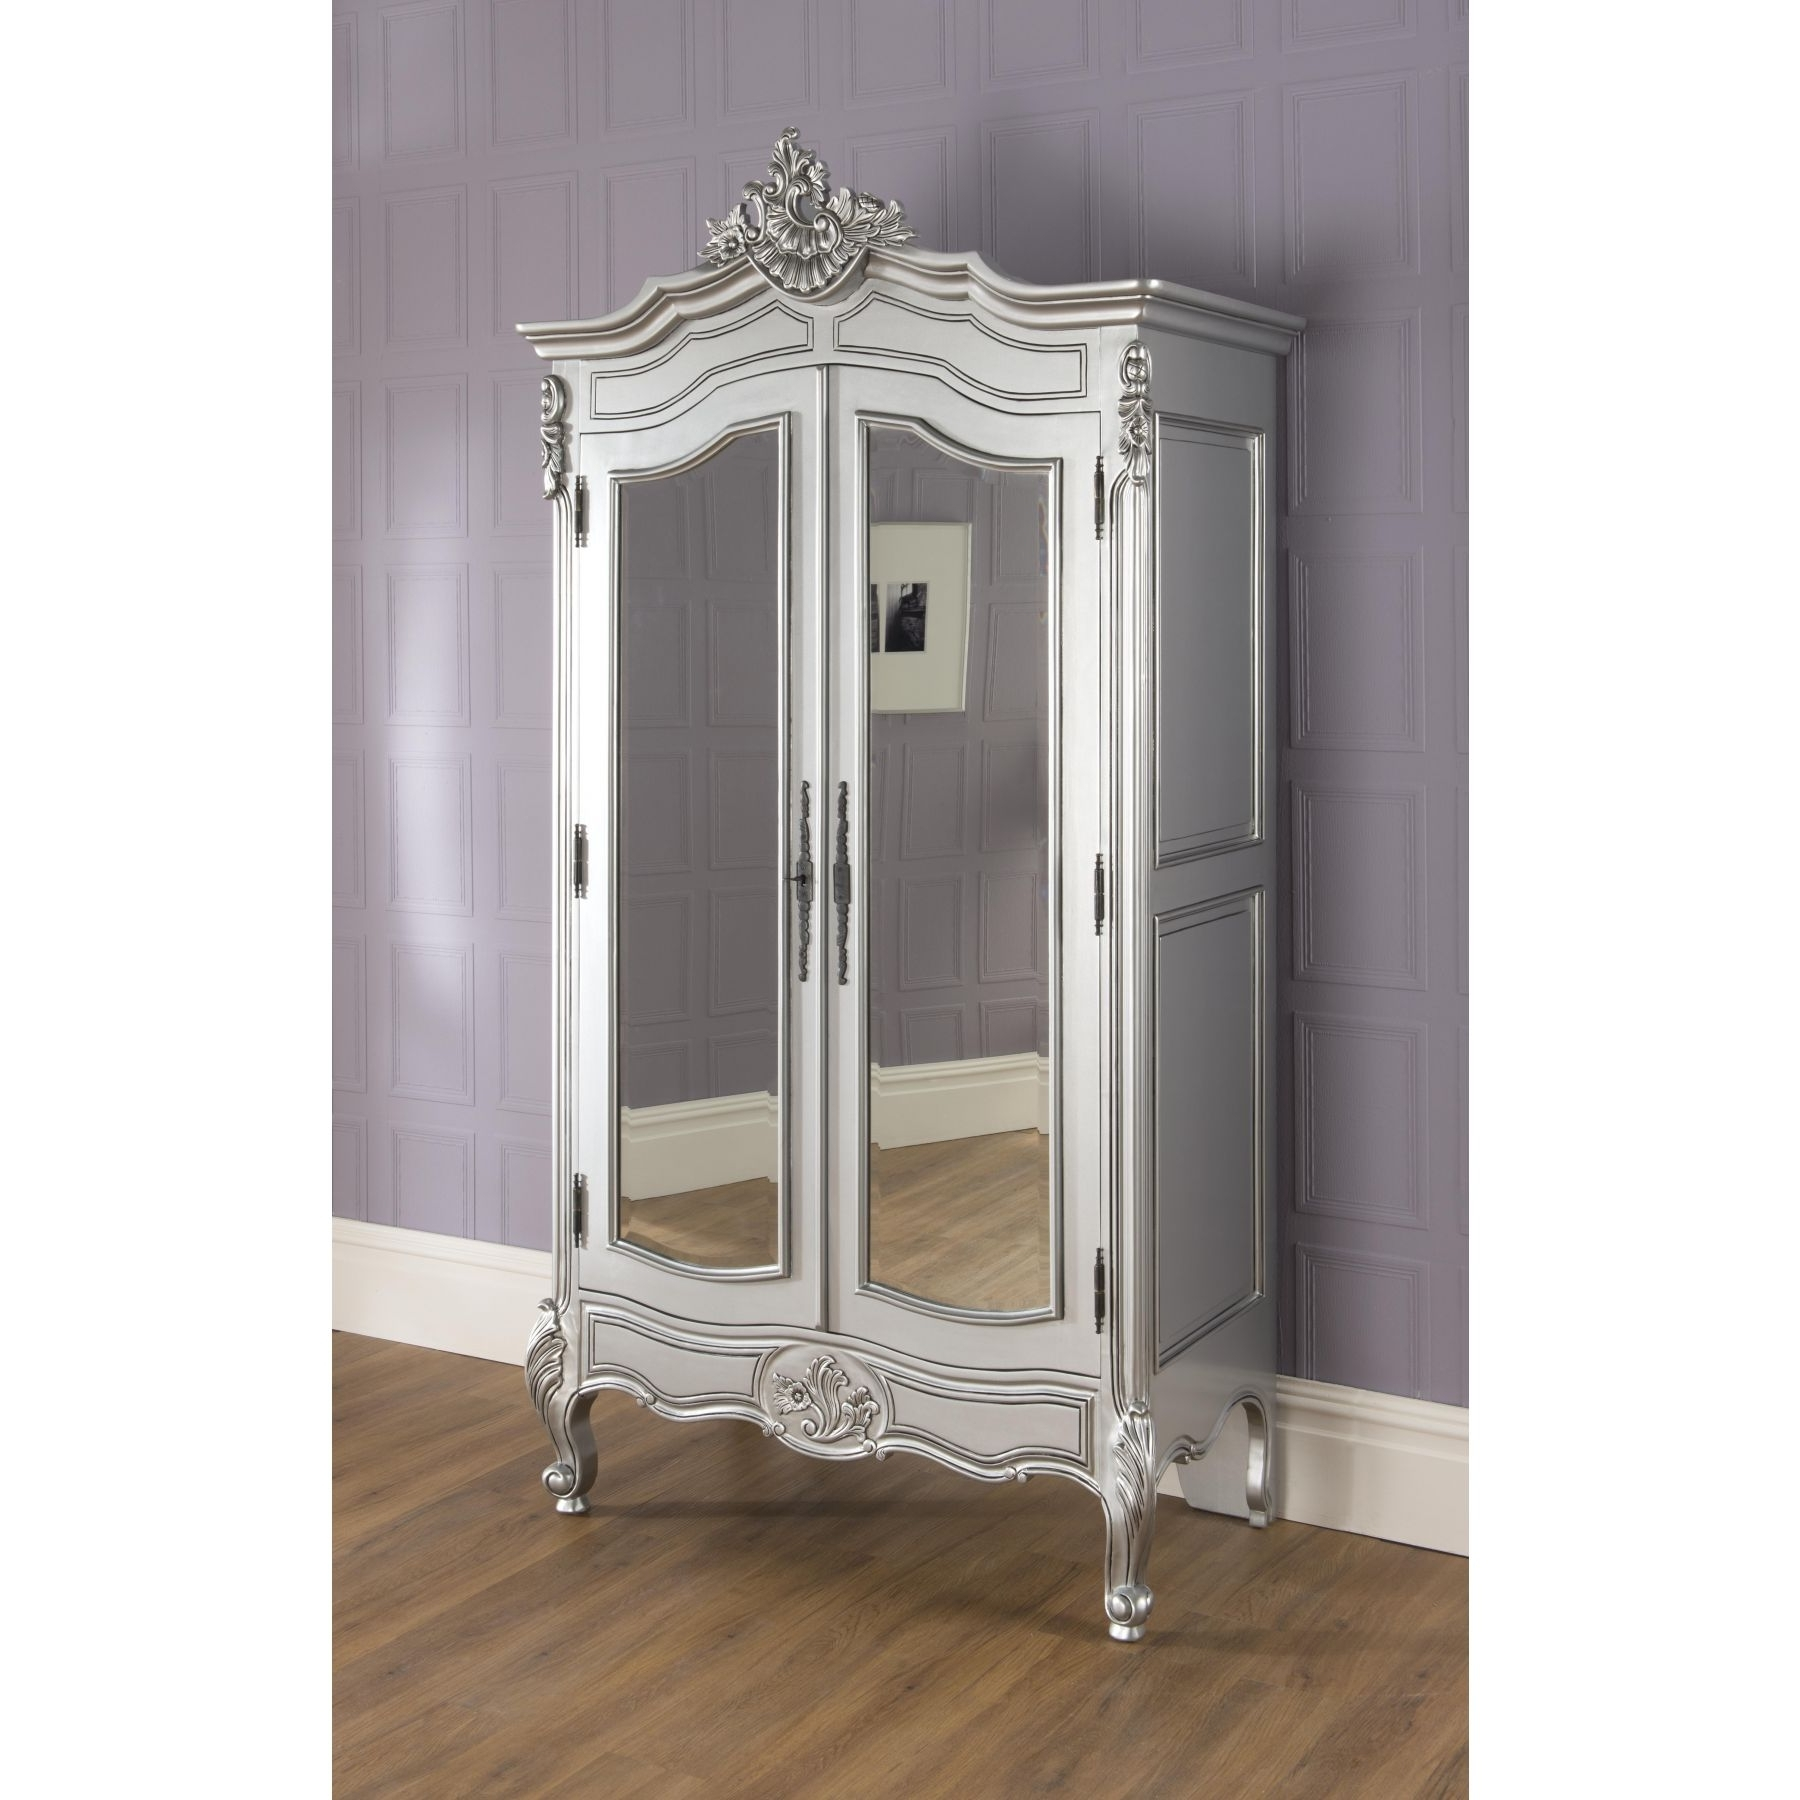 Popular White French Armoire Wardrobes In Bedroom: Antique Interior Storage Design With Wardrobe Armoire (View 15 of 15)